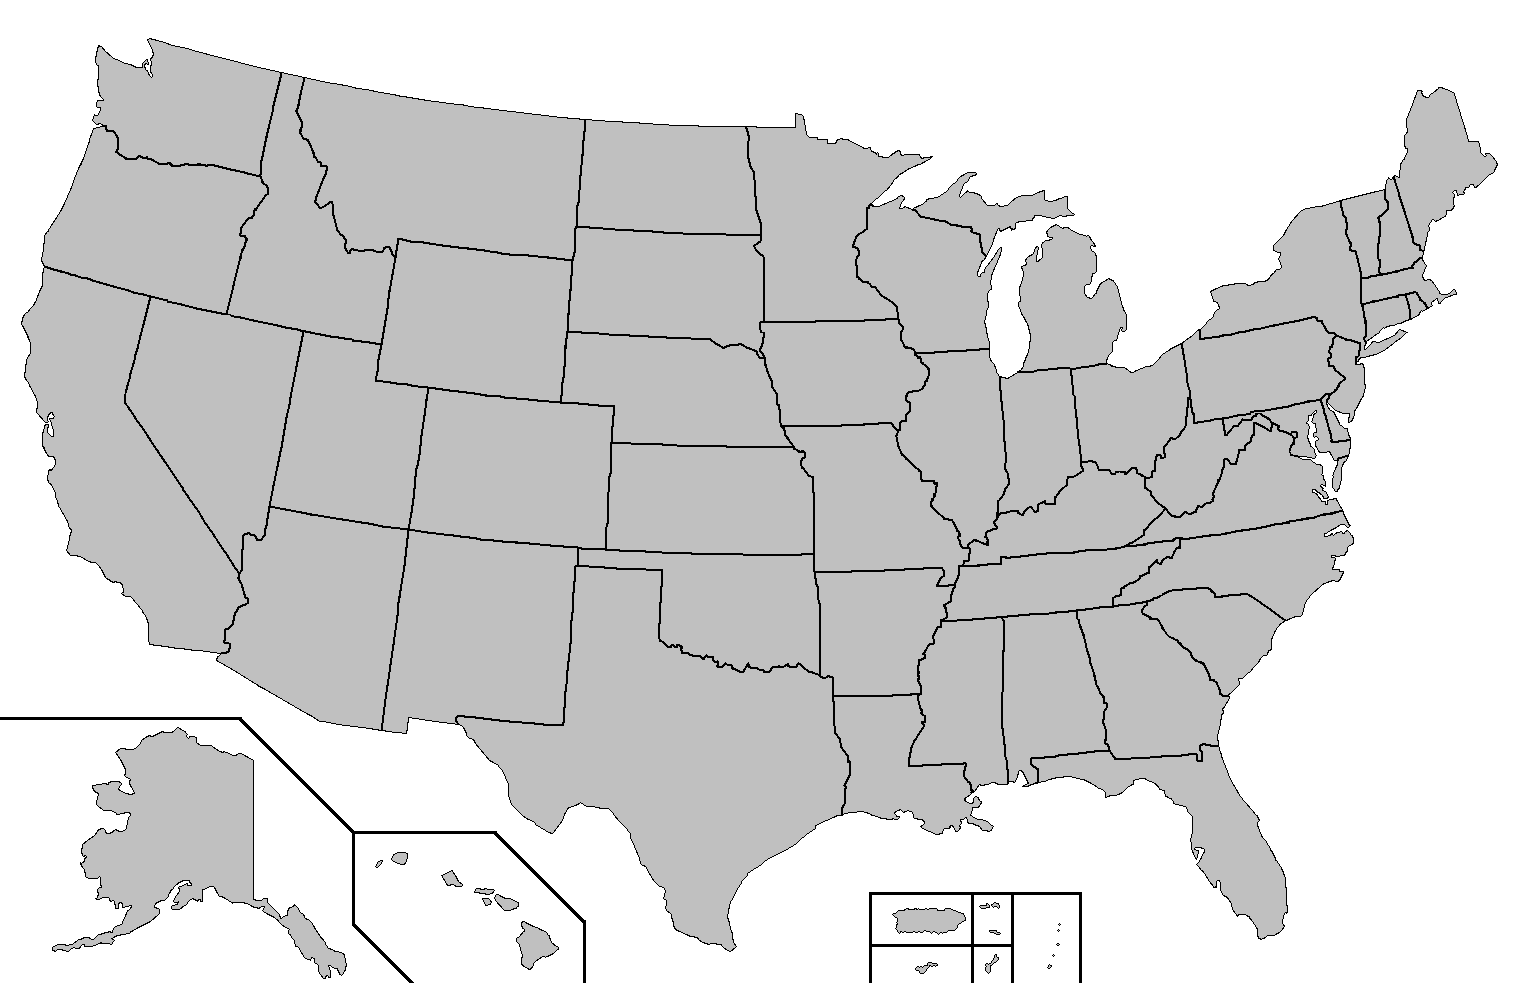 Maps United States Map Blank - Give me the map of the united states